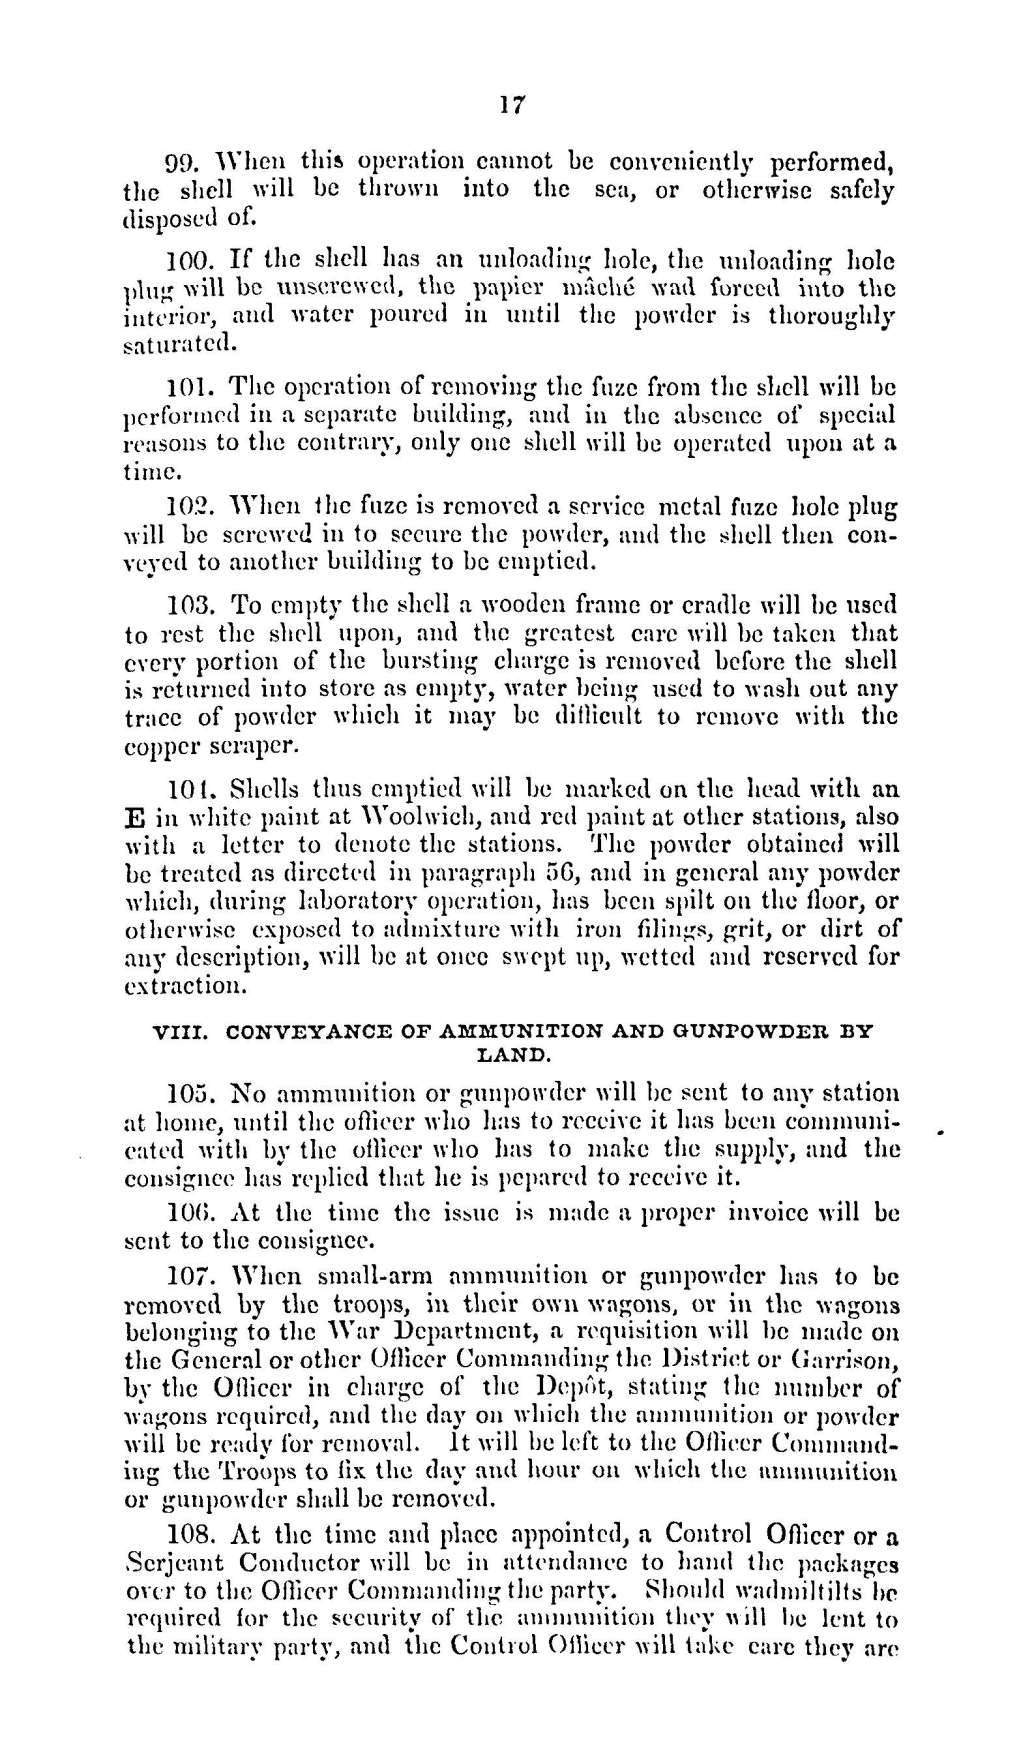 gunpowder regs_Page_17